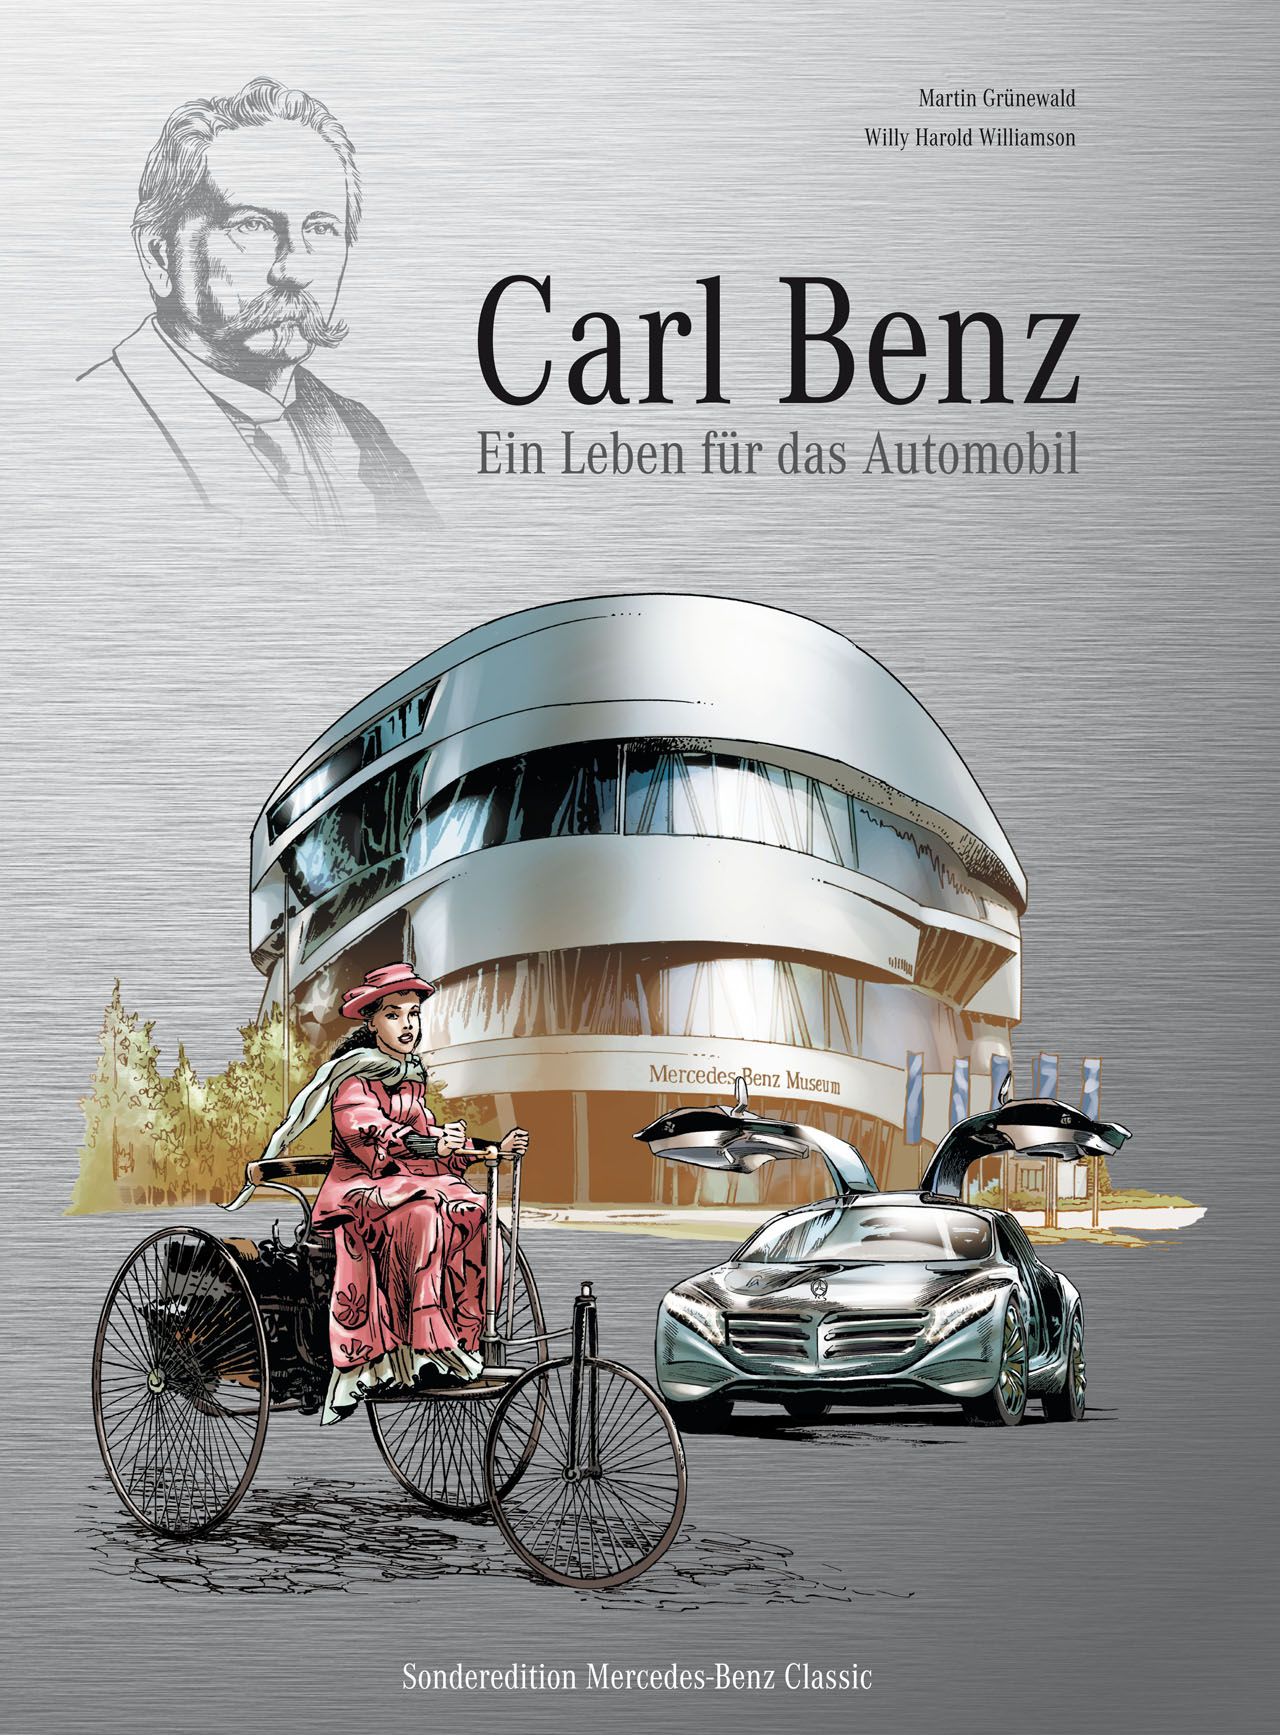 carl-benz-stripboek-01.jpg